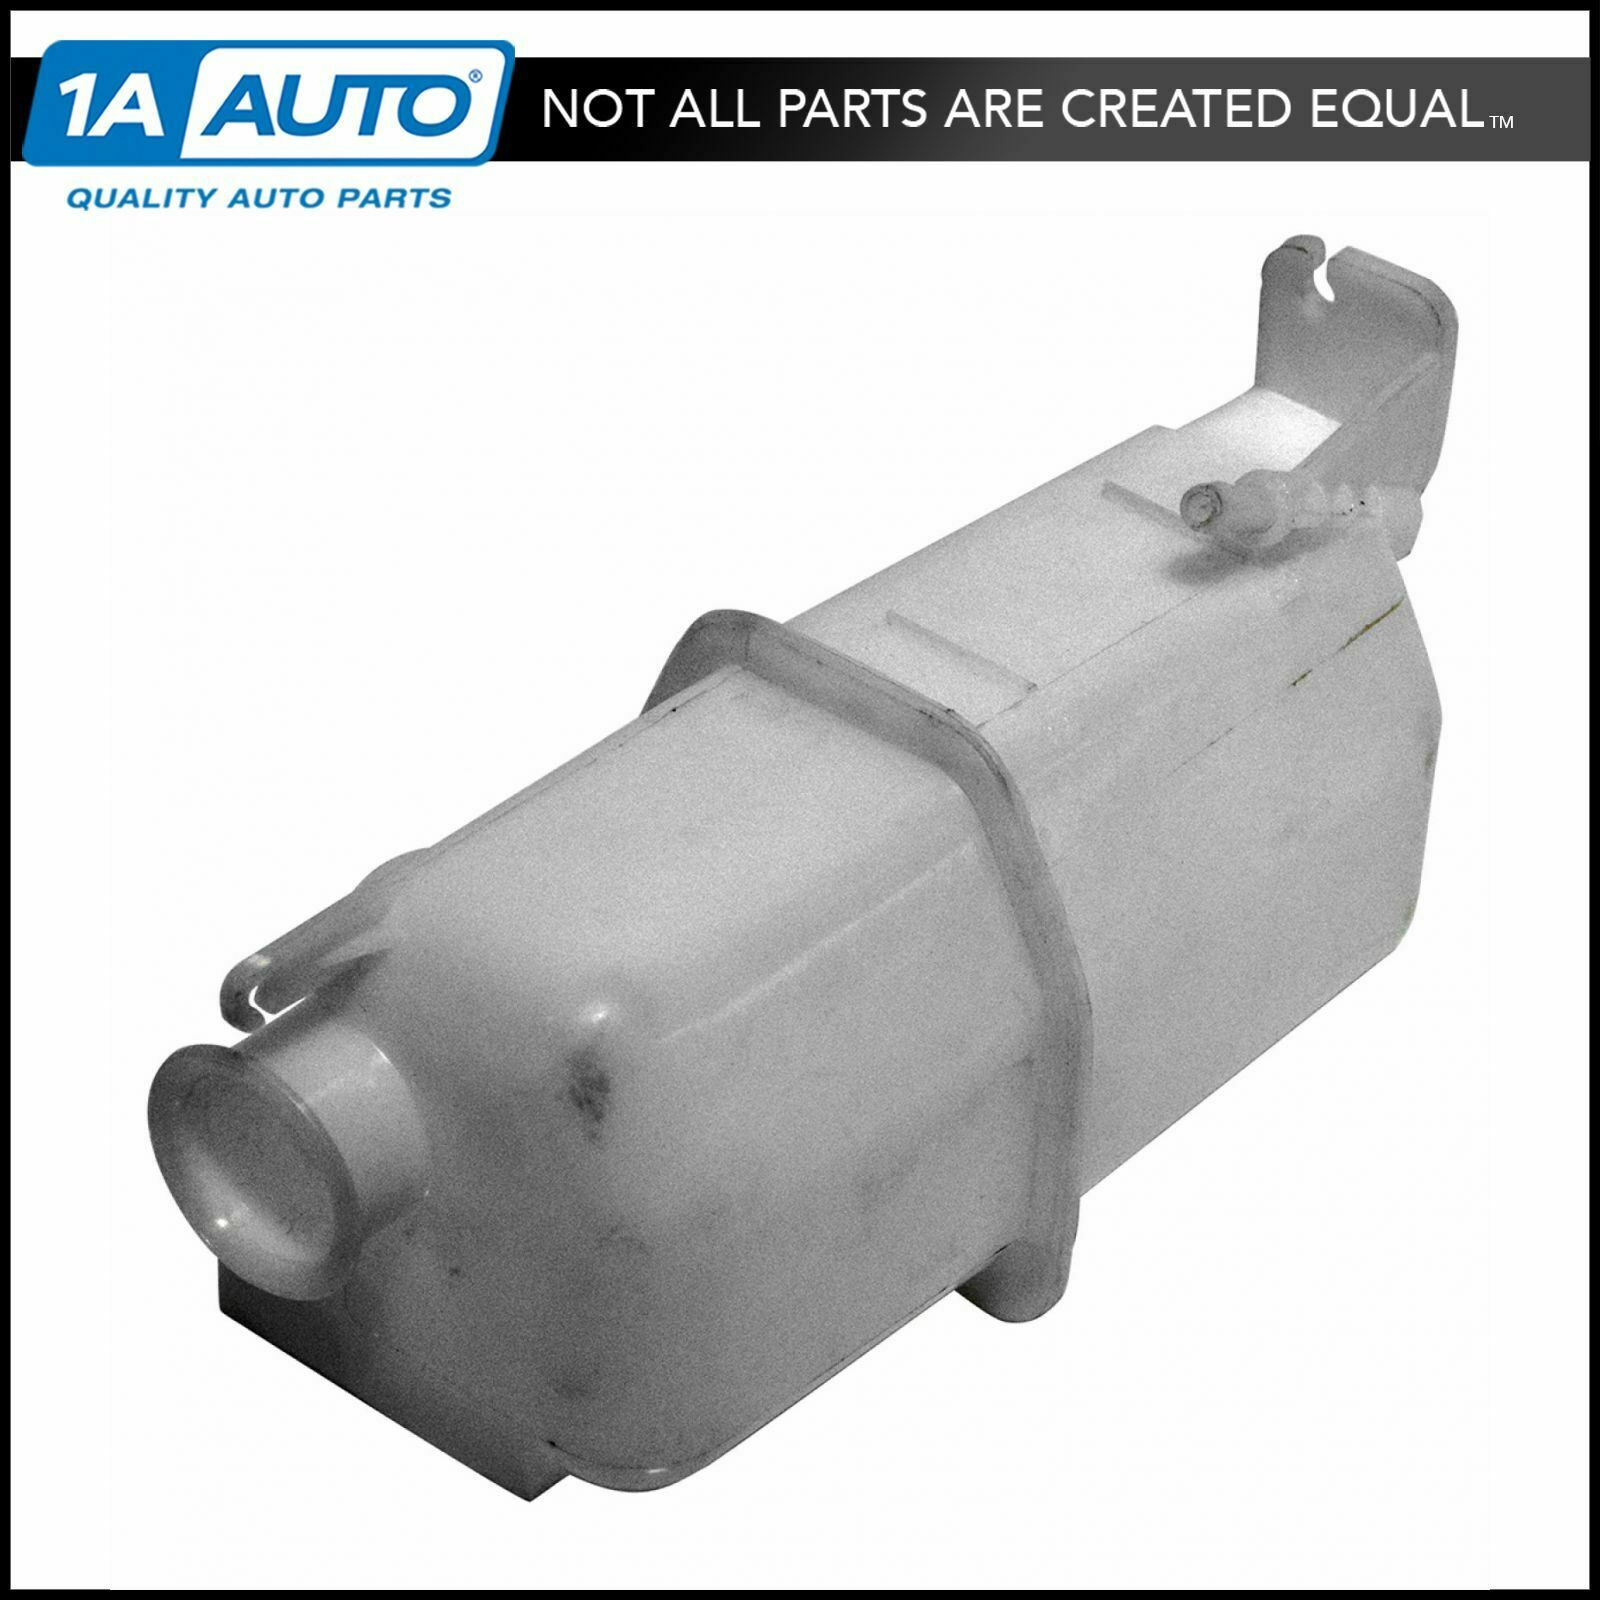 Radiator Coolant Overflow Expansion Tank Bottle For 07 10 Elantra Kia Rio 1 Of 1only 3 Available